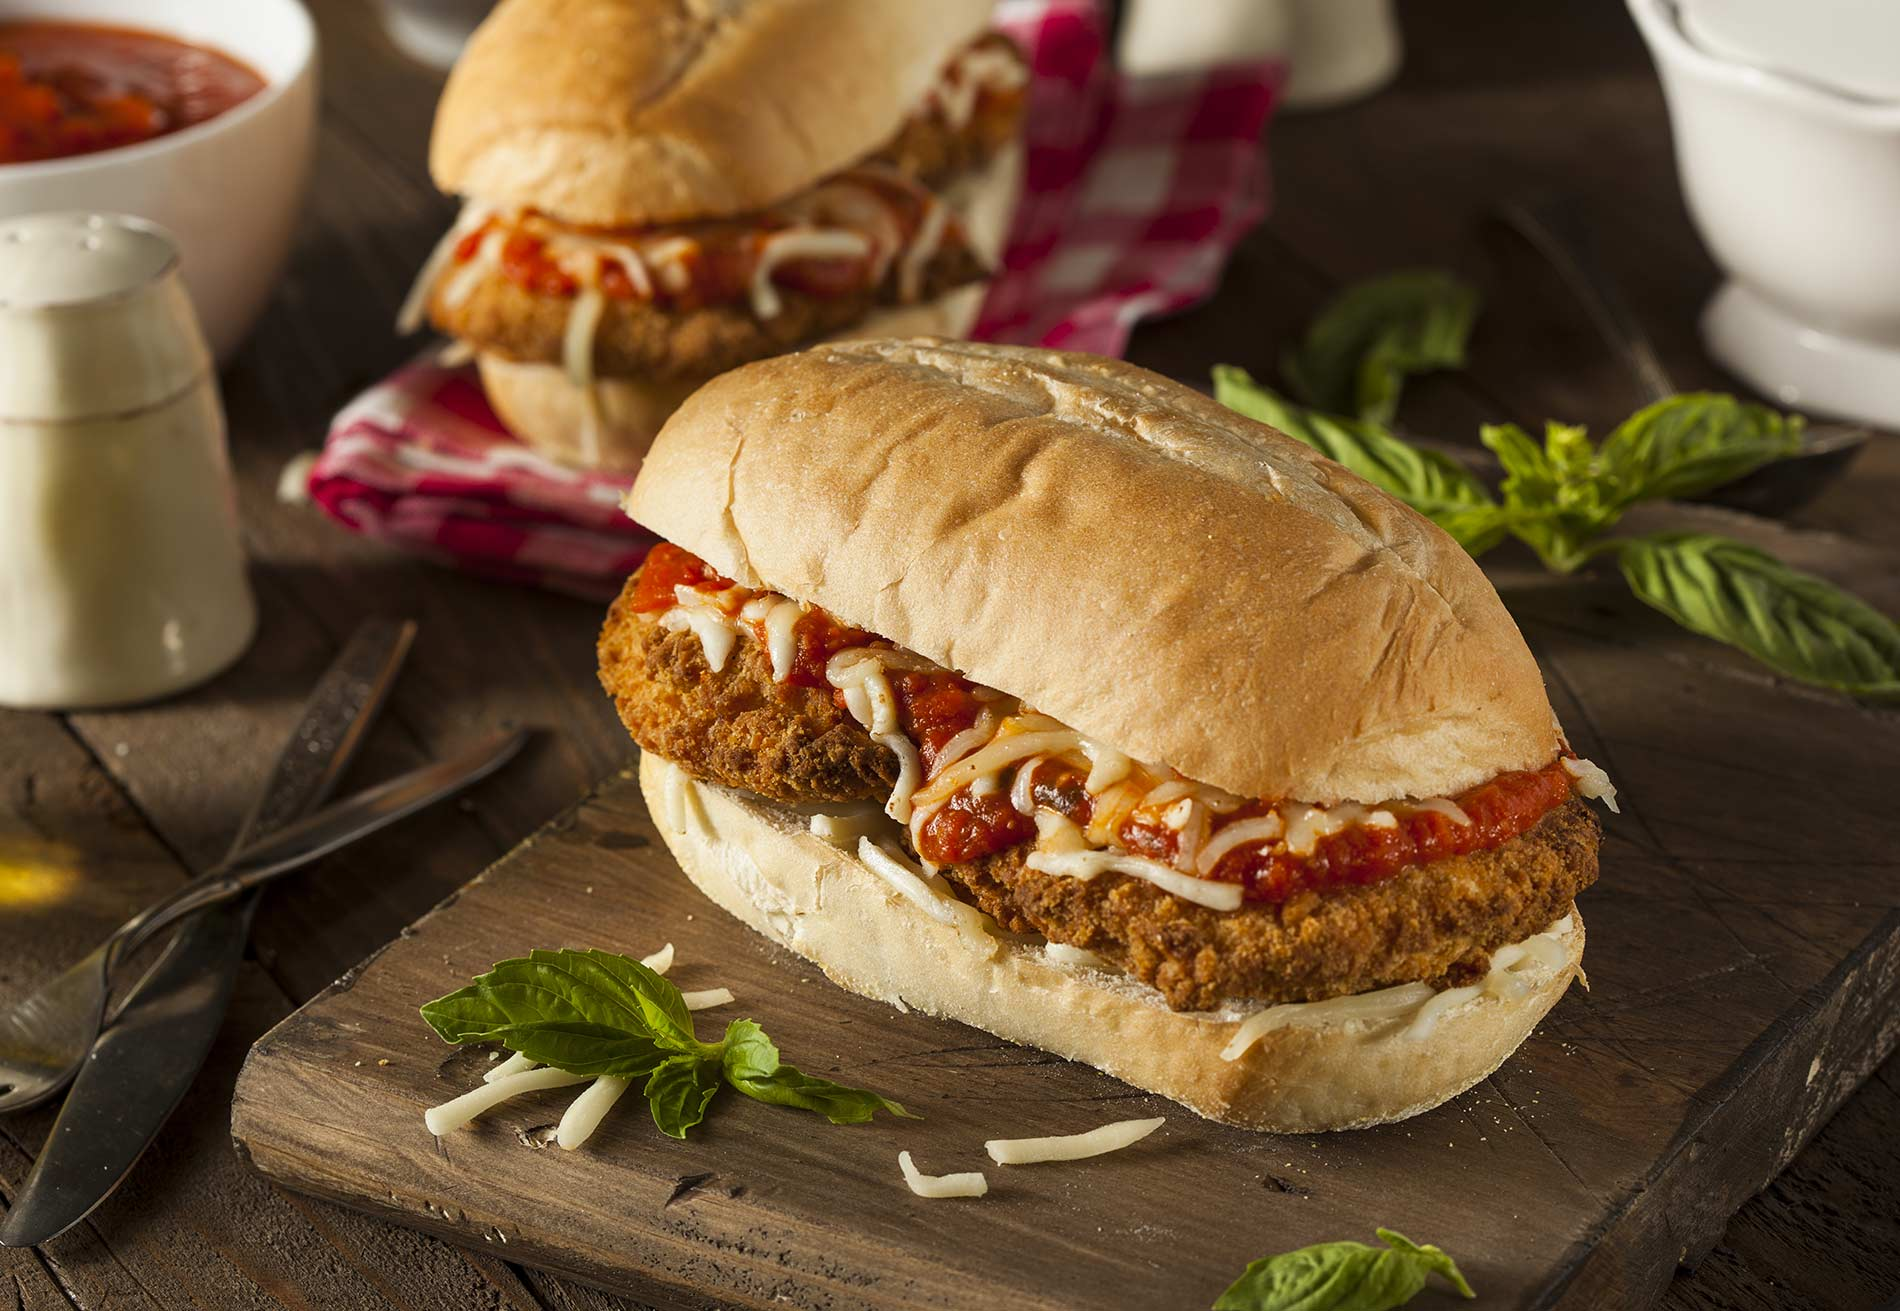 Hearty Homemade Chicken Parmesan Sandwich with Marinara and Cheese